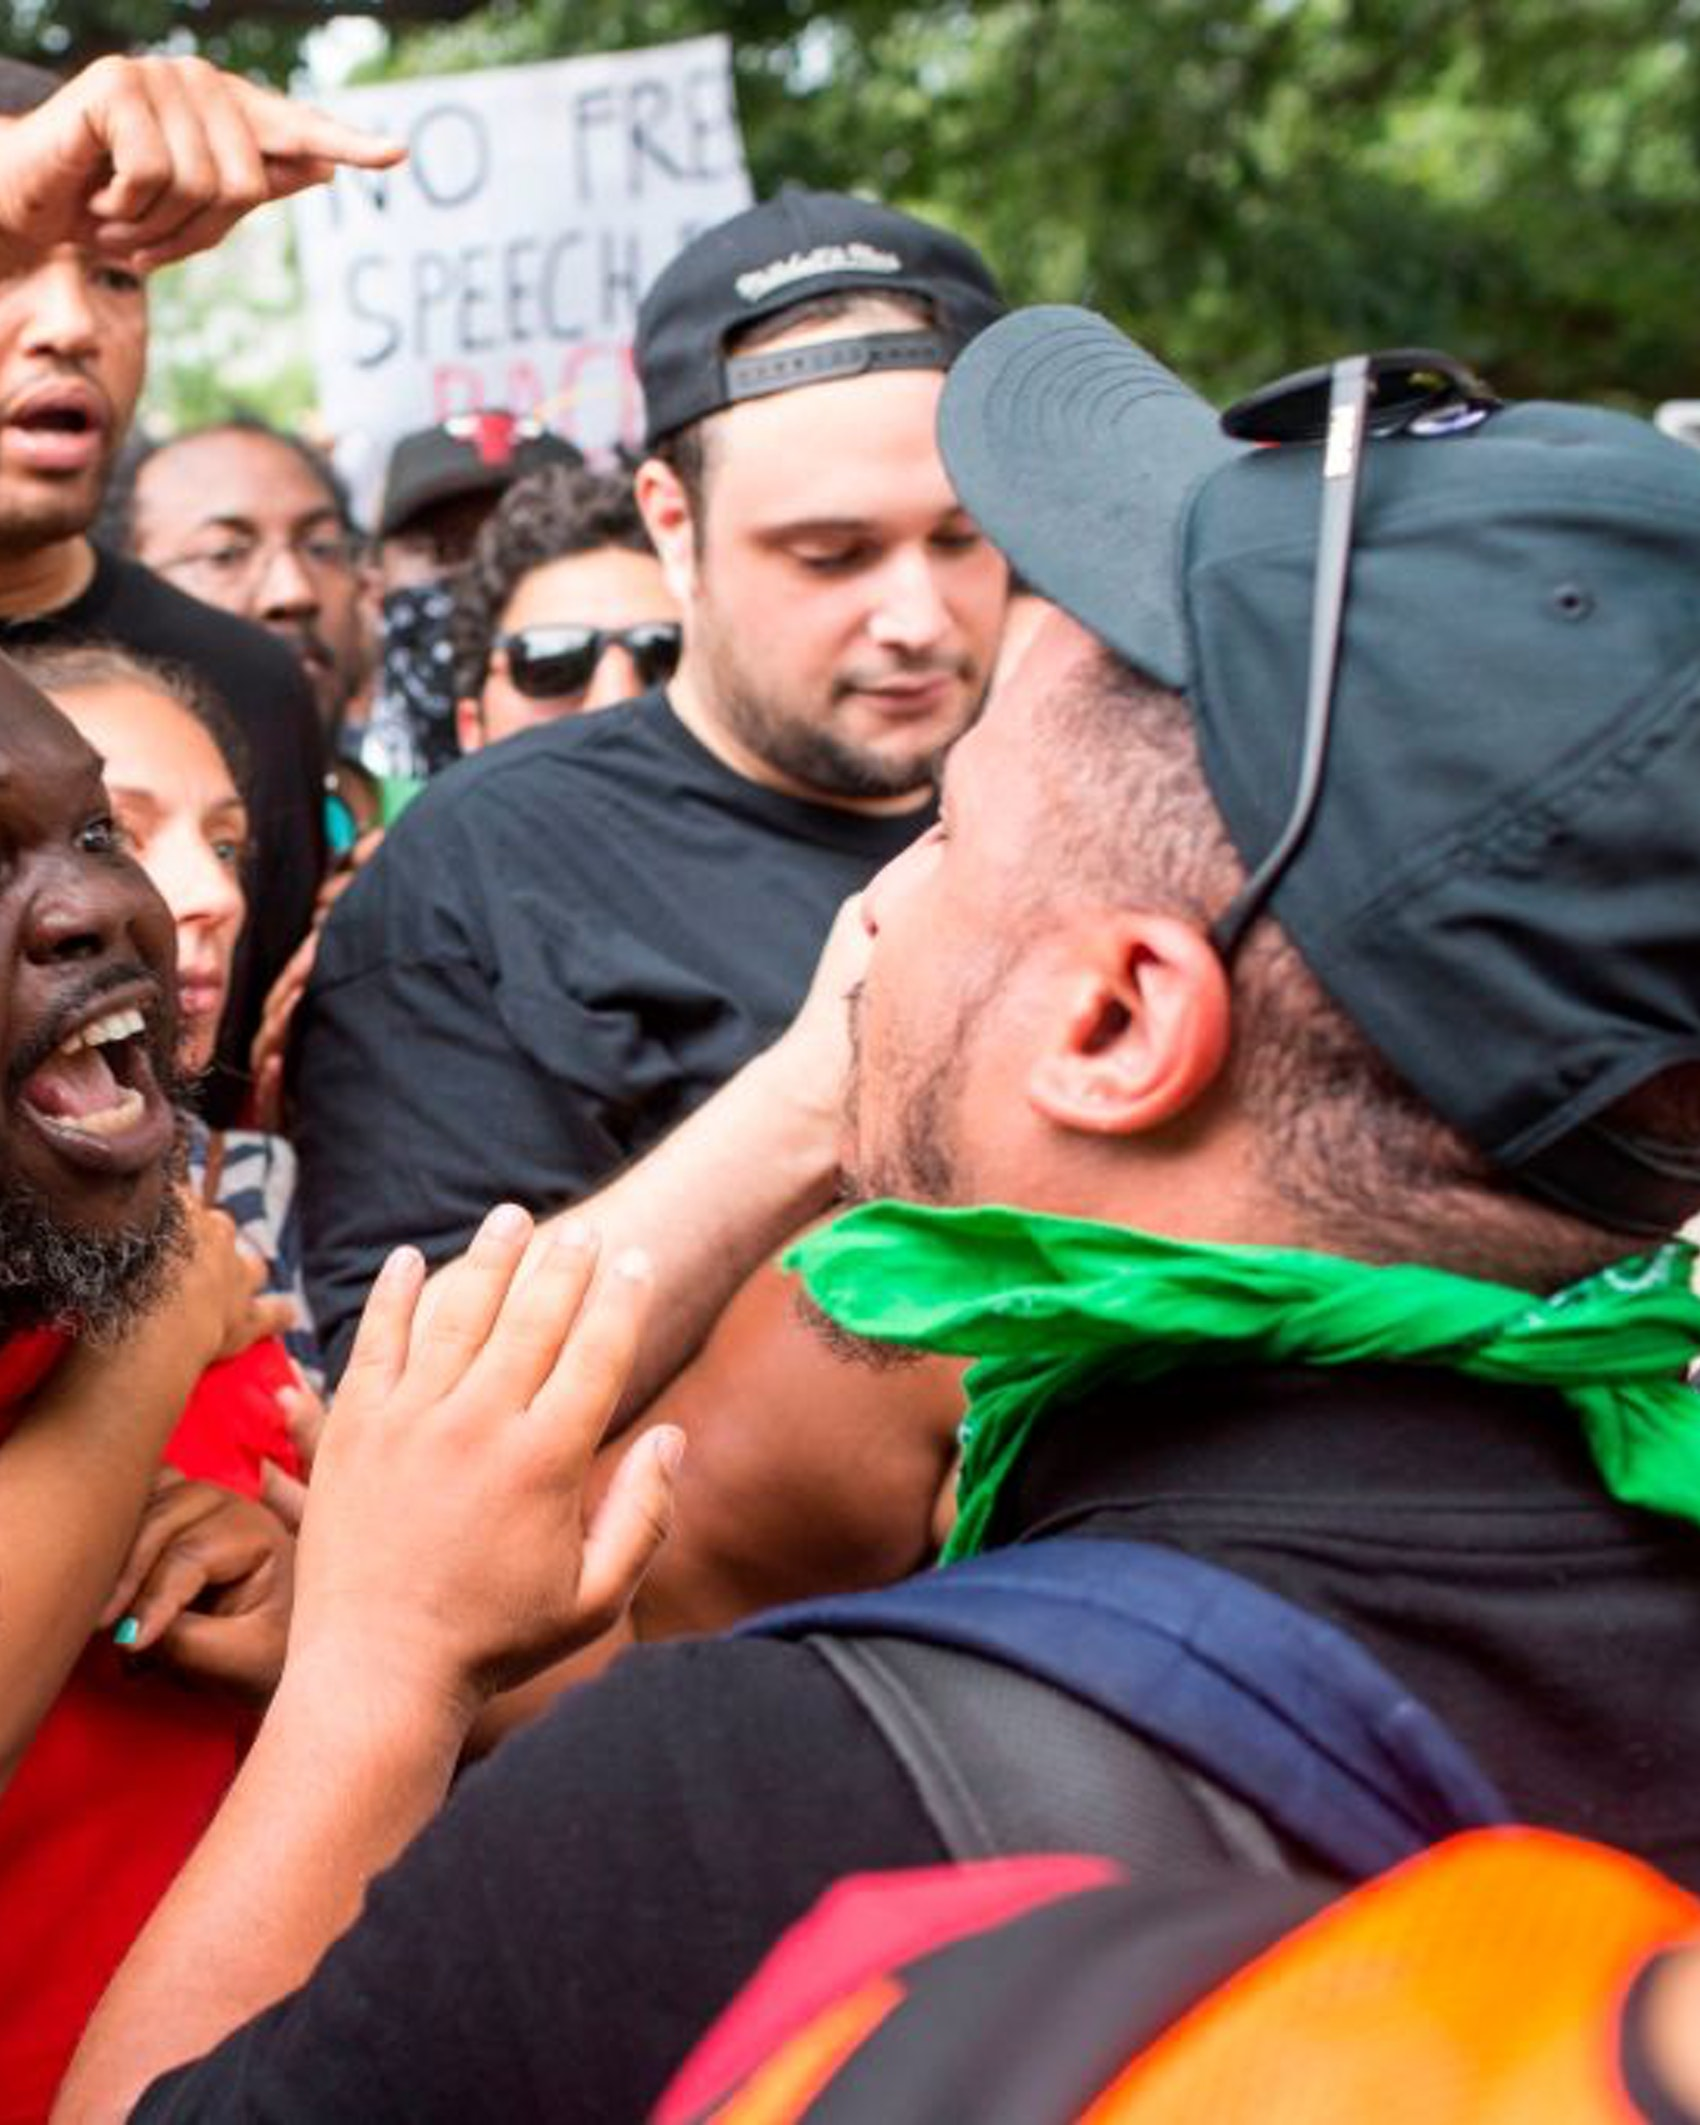 TOPSHOT - Antifa and counter protestors to a far-right rally argue during the Unite the Right 2 Rally in Washington, DC, on August 12, 2018. - Last year's protests in Charlottesville, Virginia, that left one person dead and dozens injured, saw hundreds of neo-Nazi sympathizers, accompanied by rifle-carrying men, yelling white nationalist slogans and wielding flaming torches in scenes eerily reminiscent of racist rallies held in America's South before the Civil Rights movement. (Photo by ZACH GIBSON / AFP) (Photo credit should read ZACH GIBSON/AFP via Getty Images)